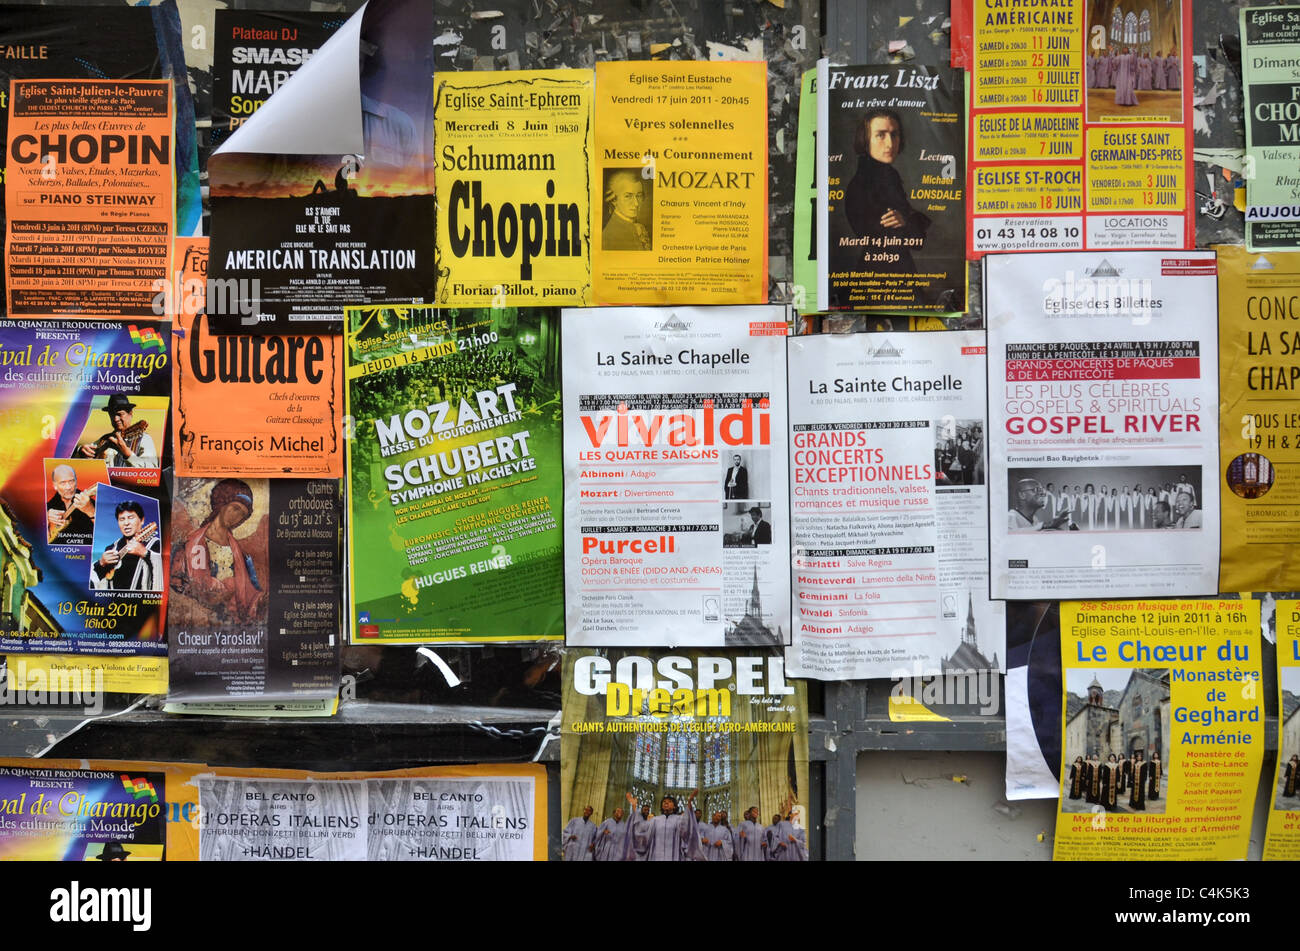 Adverts for a variety of classical music and gospel concerts on a wall in Paris, France. - Stock Image